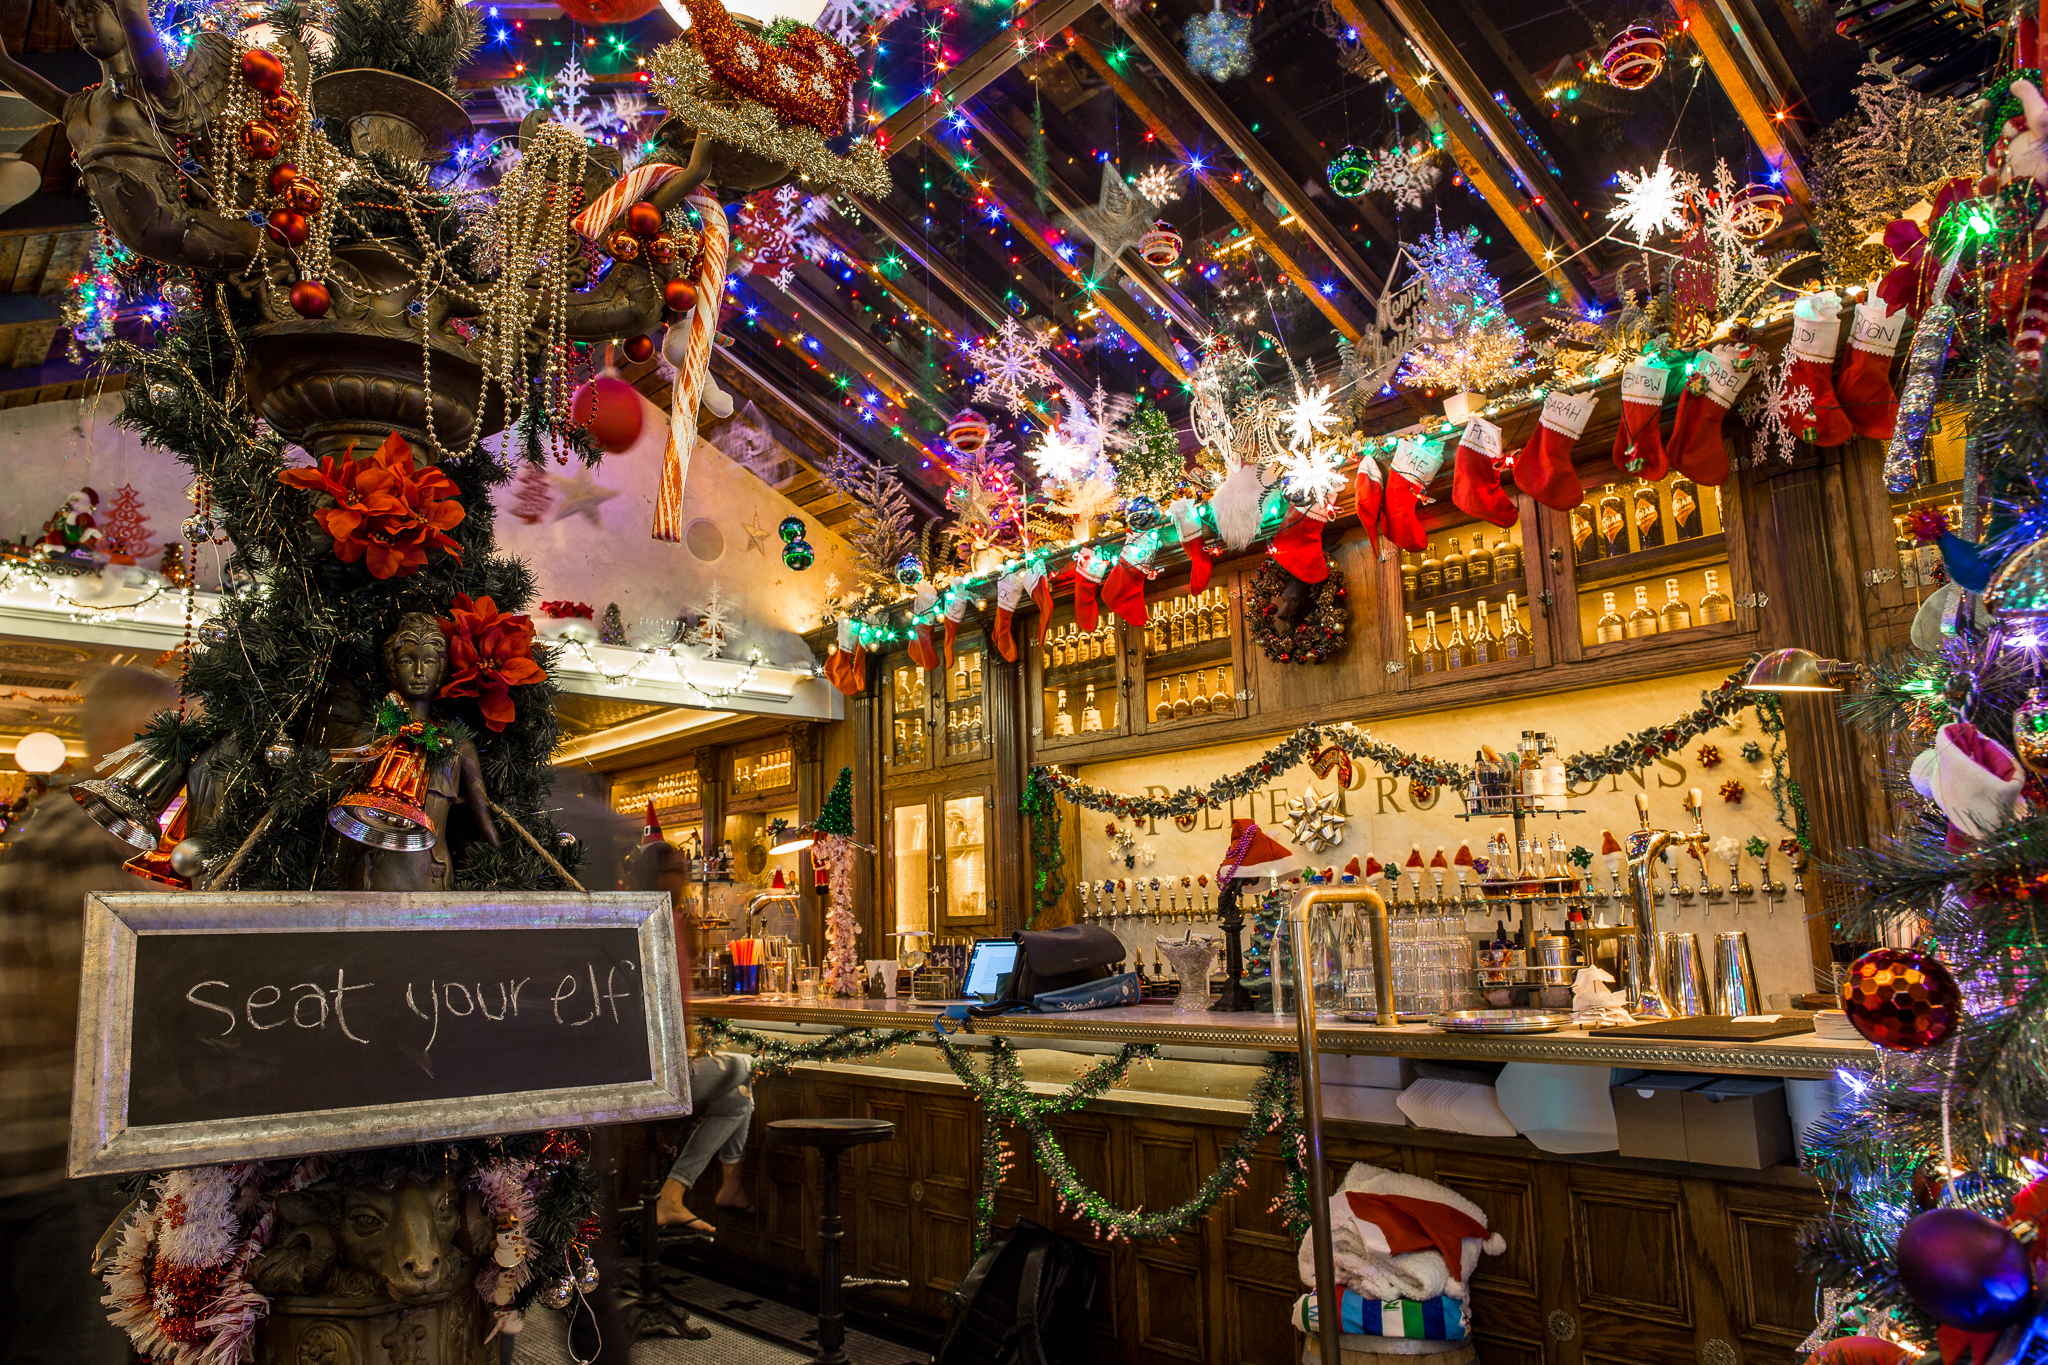 Hugely Popular Christmas Pop-Up Bar to Hit New Orleans for the First Time